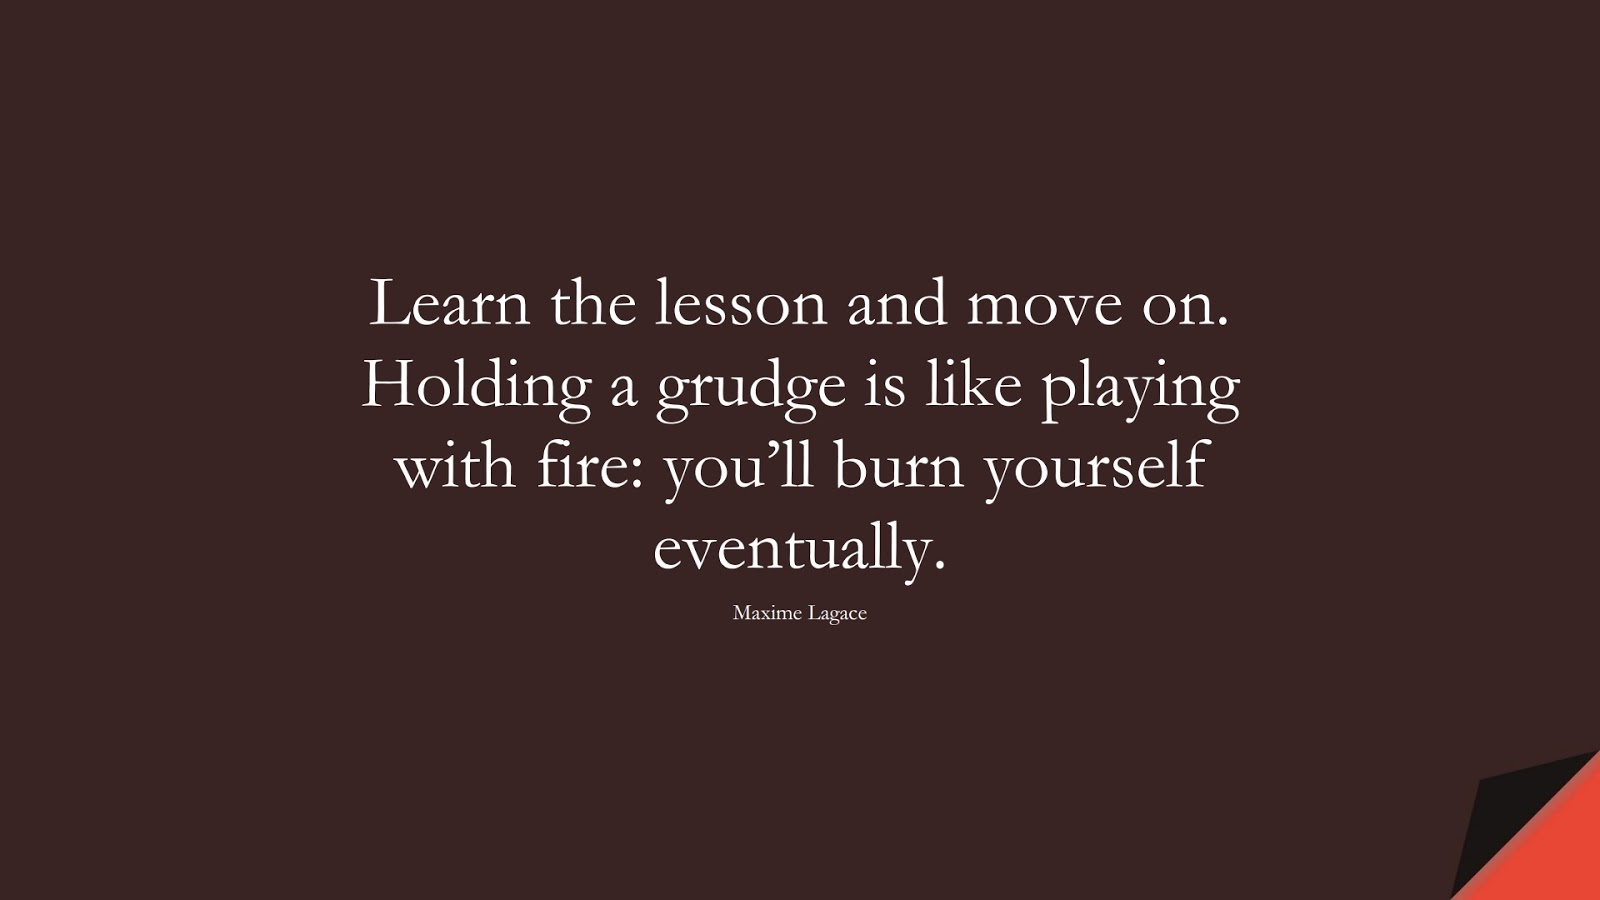 Learn the lesson and move on. Holding a grudge is like playing with fire: you'll burn yourself eventually. (Maxime Lagace);  #LoveQuotes